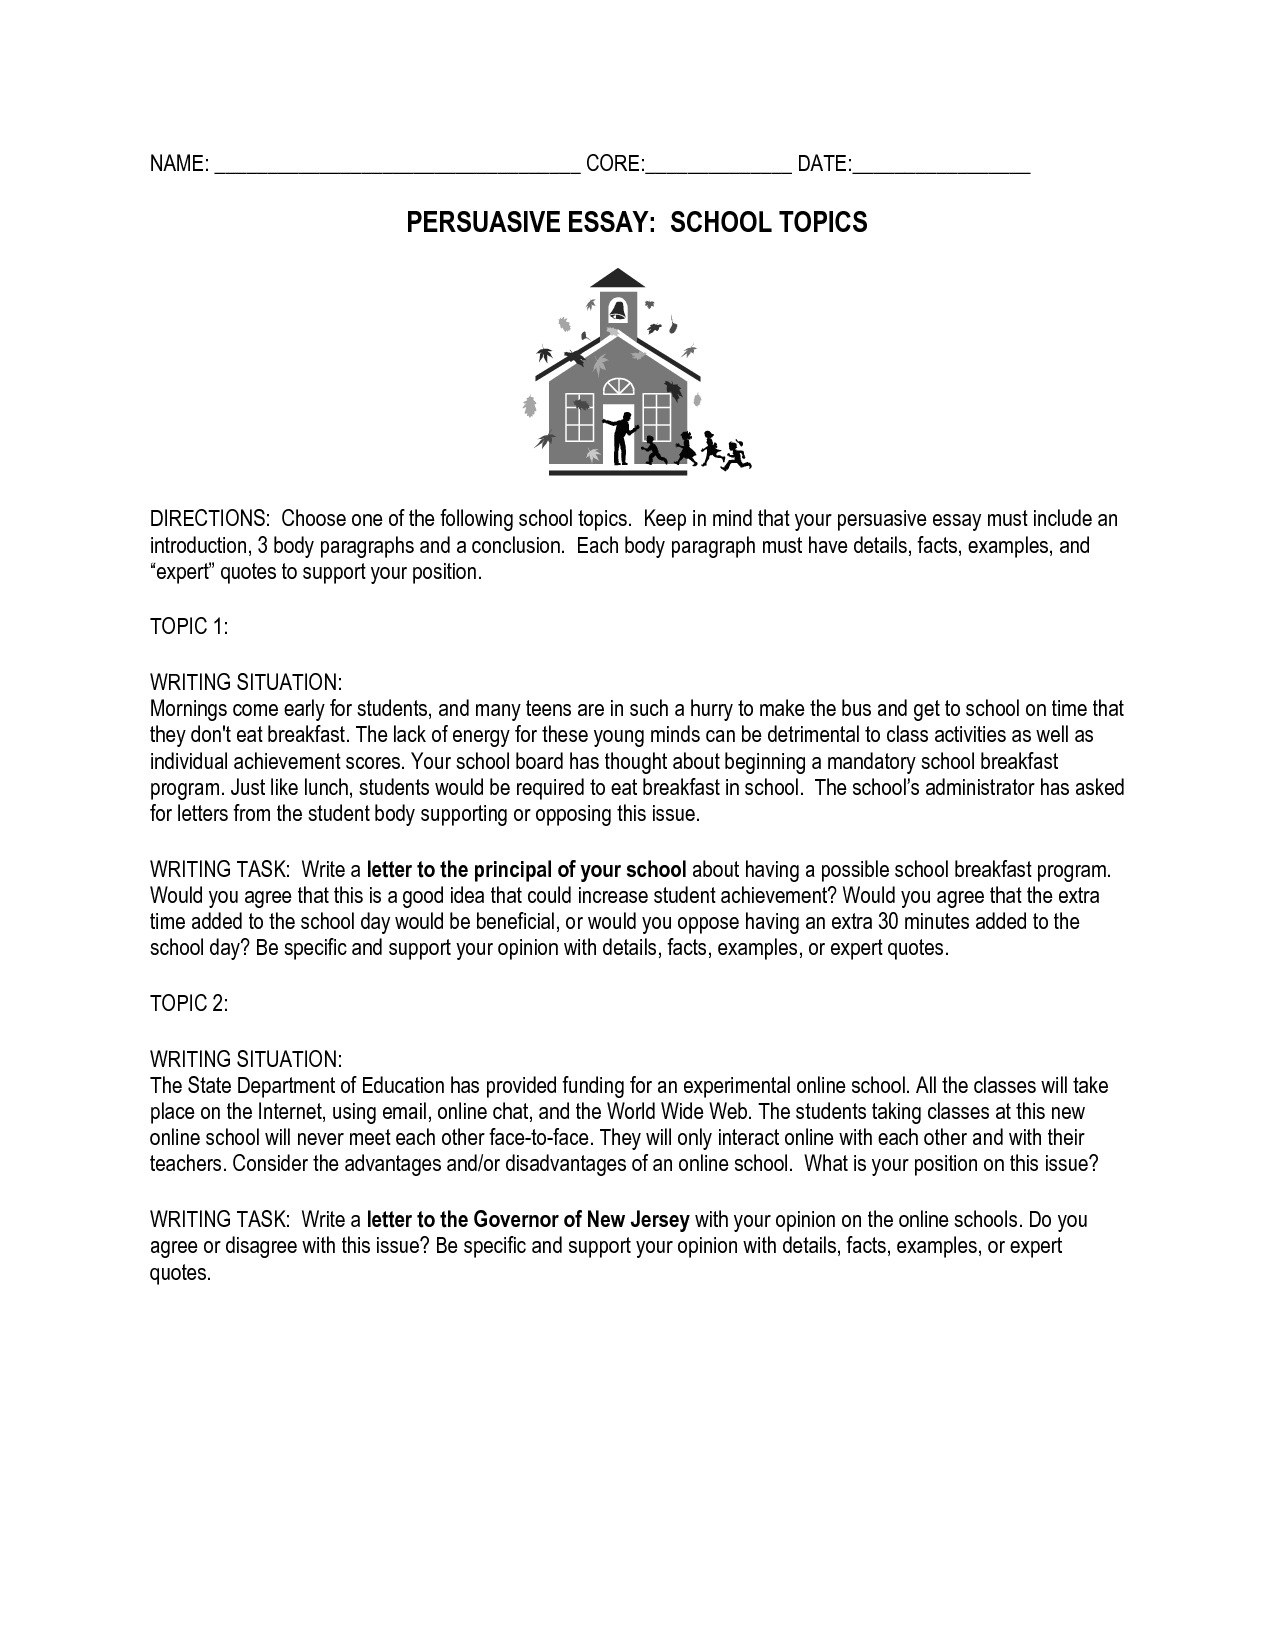 012 Research Paper How To Write Conclusion Of An Argumentative Essay Stunning A For Full